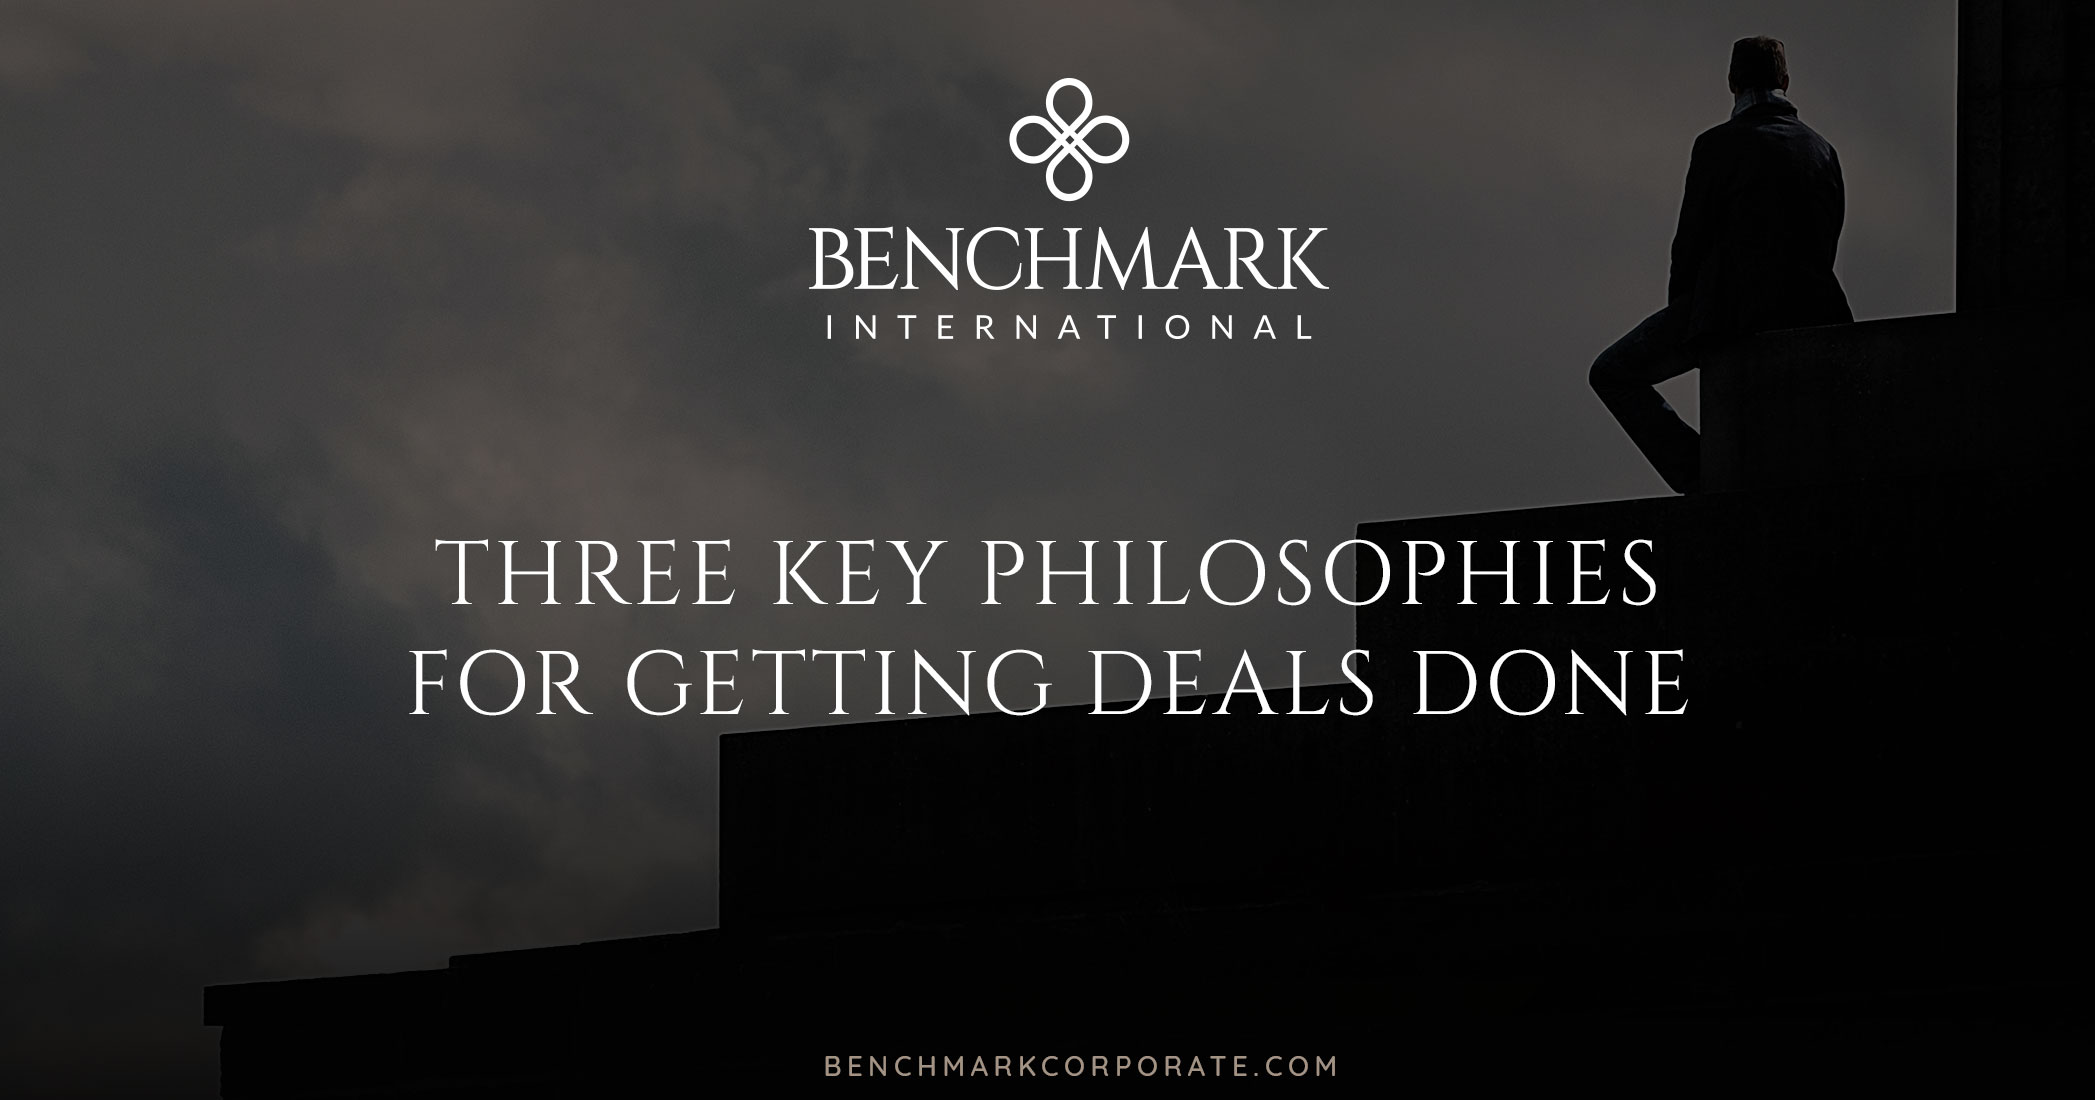 Benchmark International's Three Key Philosophies for Getting Deals Done